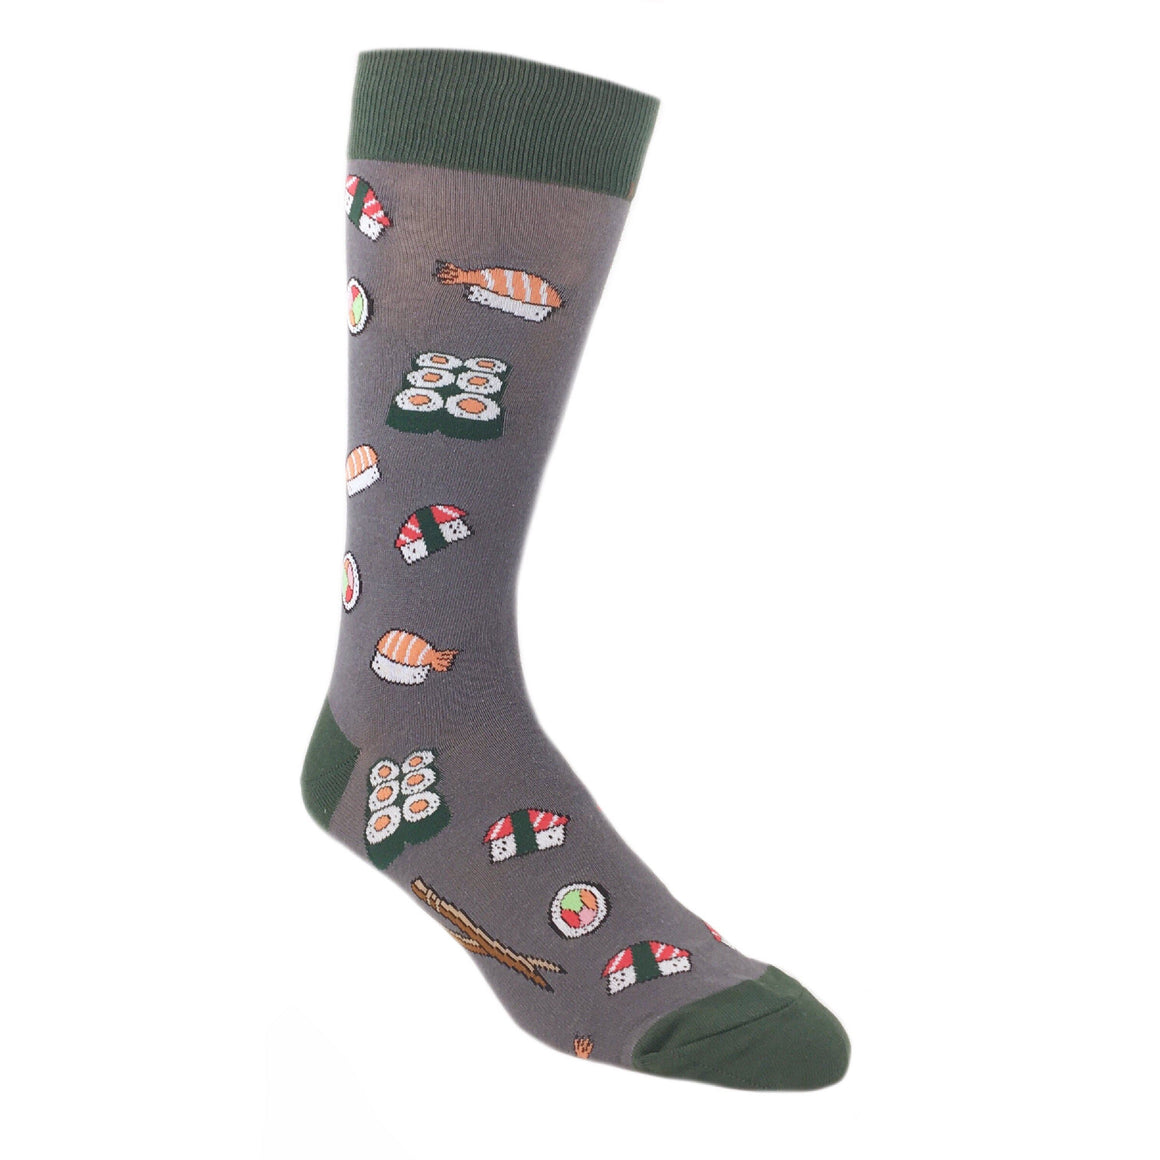 Tasty Sushi Food Socks - The Sock Spot